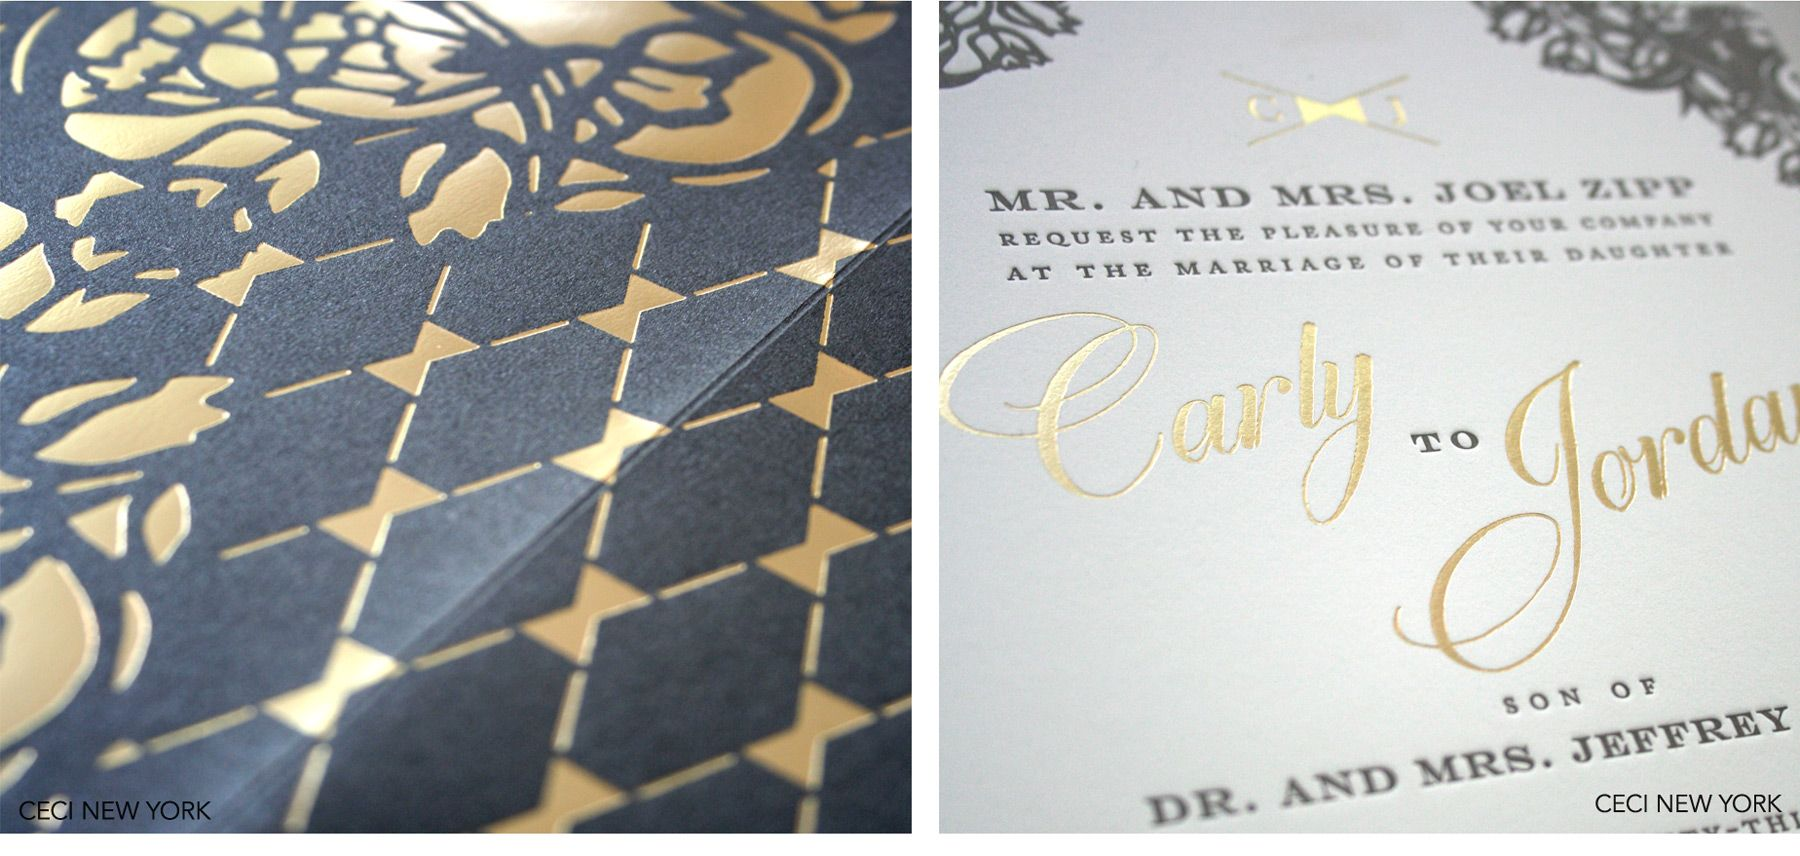 Luxury Wedding Invitations by Ceci New York - Our Muse - Chic Wedding in Virginia: Carly & Jordan, Part 1 - Be inspired by Carly & Jordan's chic wedding at Salamander Resort & Spa - Ceci New York Luxury Wedding Invitations - laser-cutting, laser-cut bellyband, foilstamping, letterpress printing, custom wedding invitations, wedding, chic wedding, ceci new york, luxury wedding invitations